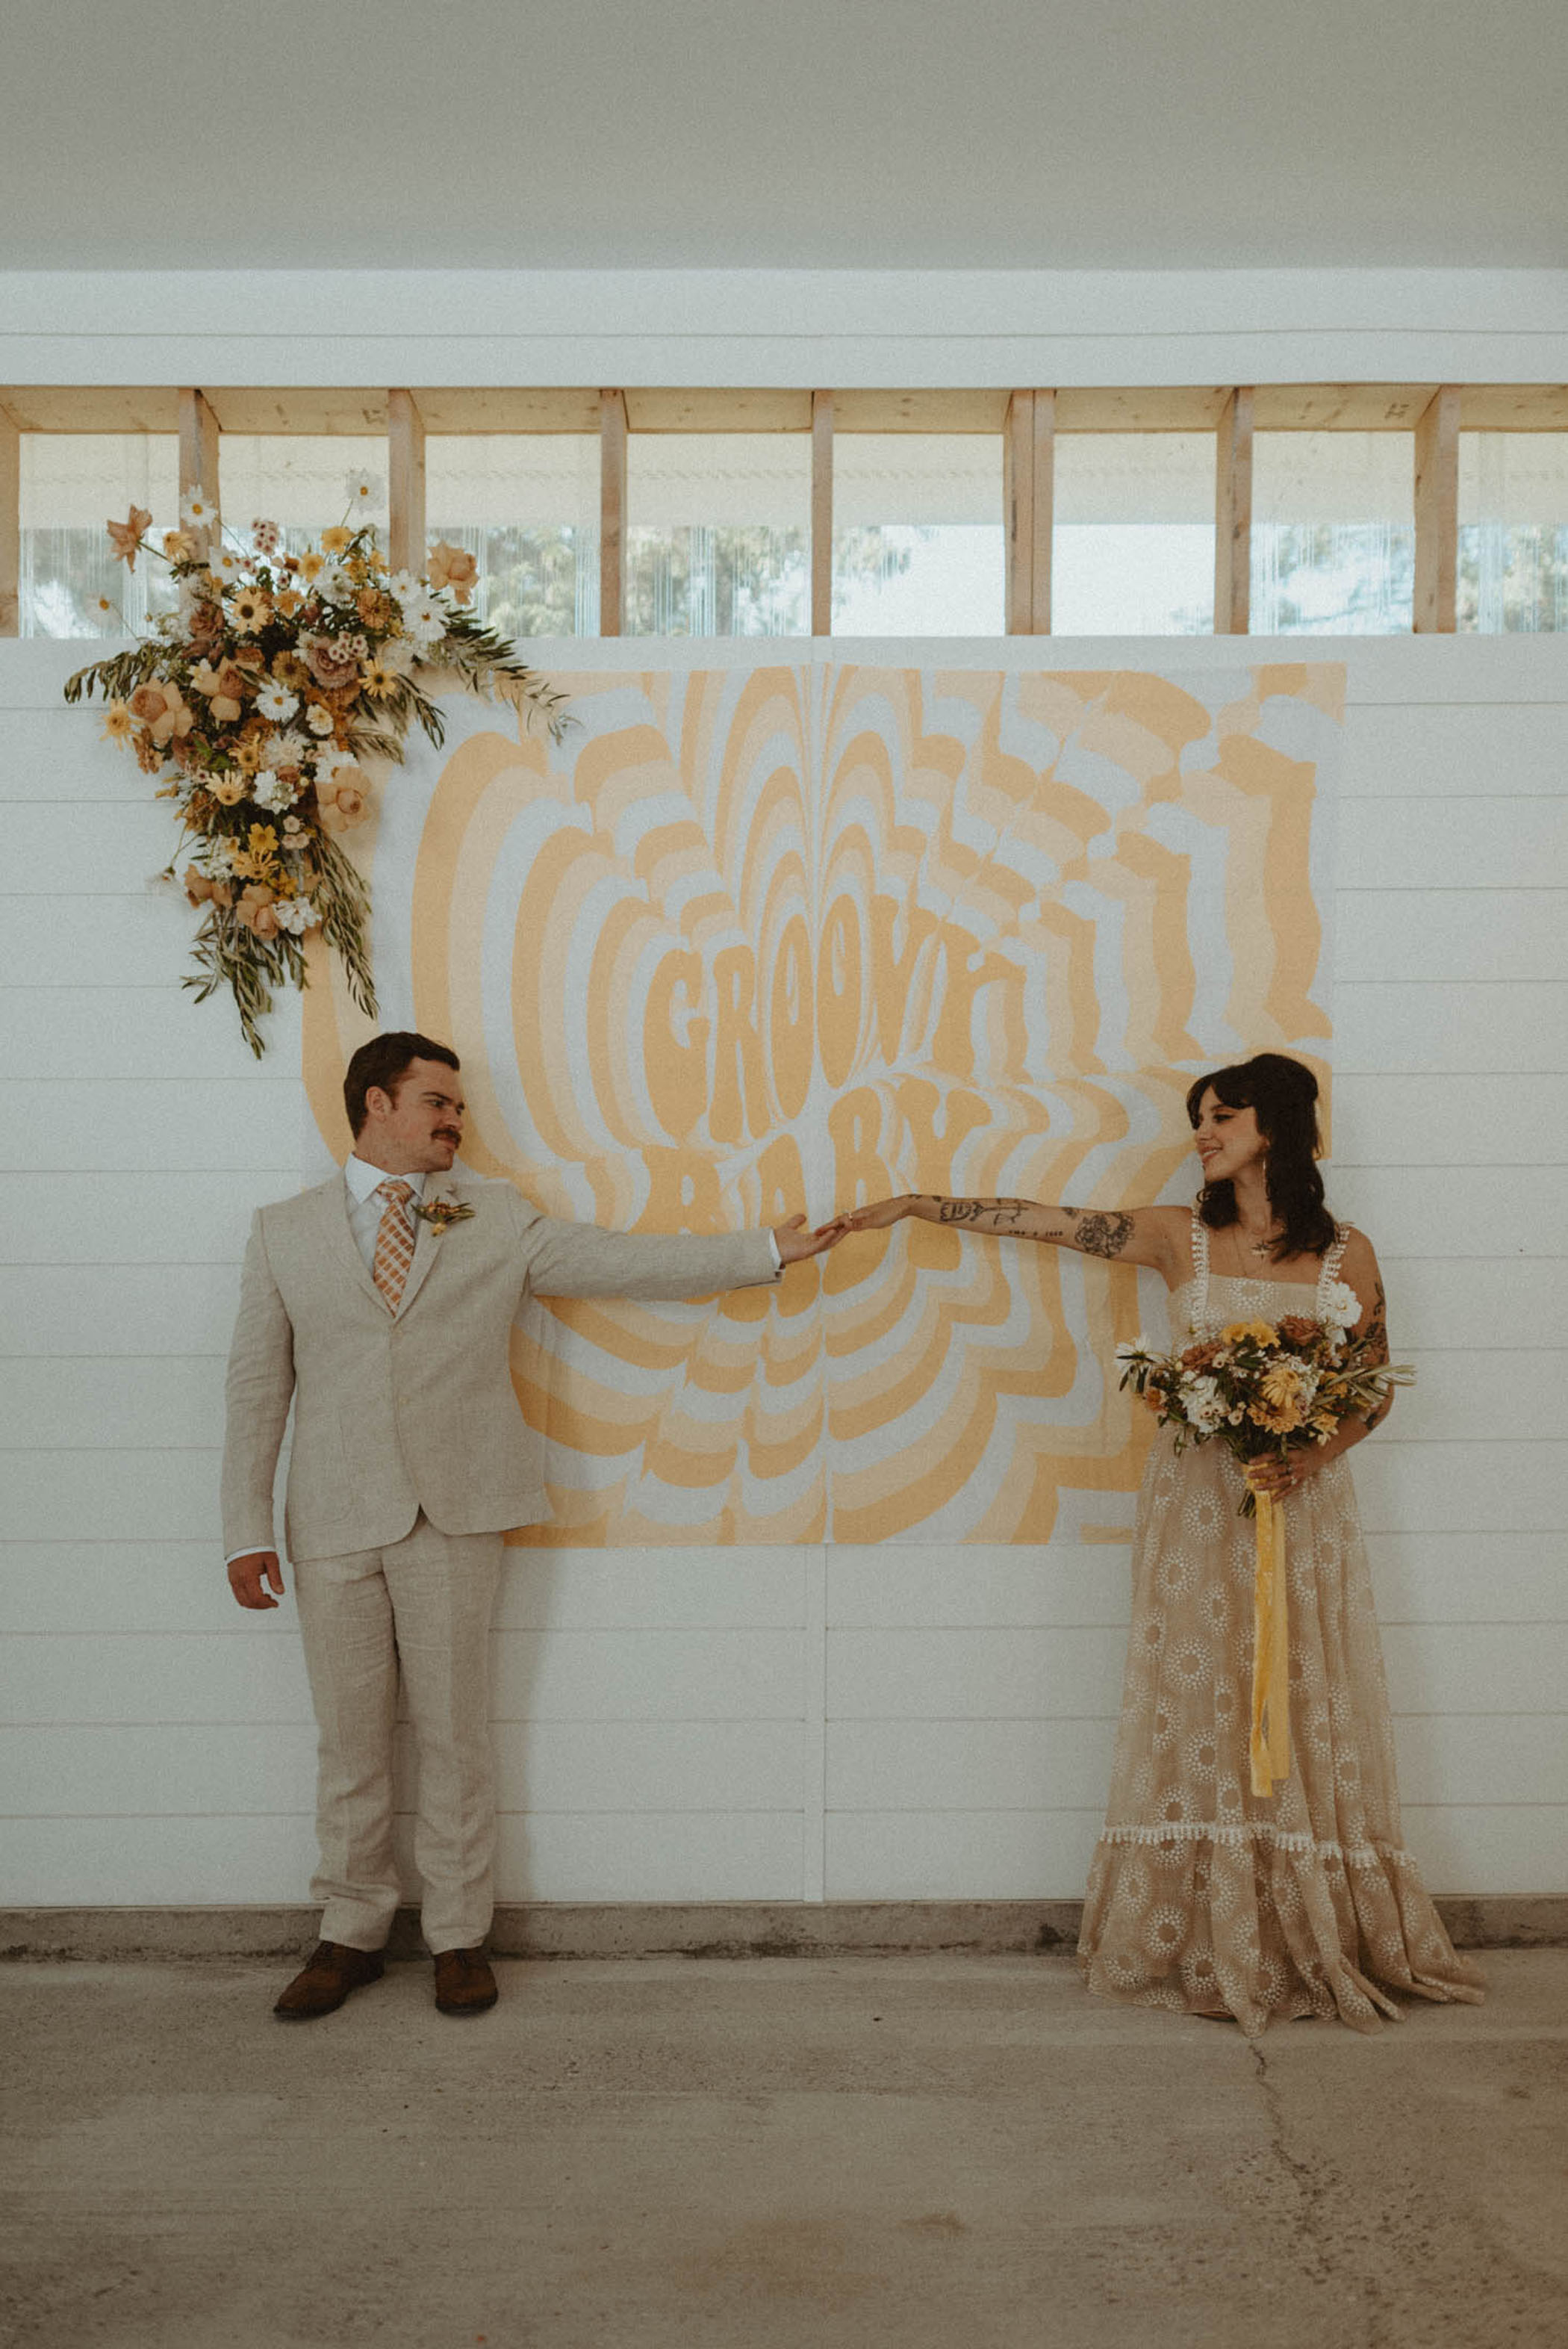 This Retro-Inspired Elopement Features a Psychedelic Backdrop and Other Must-See 70s Themed Details